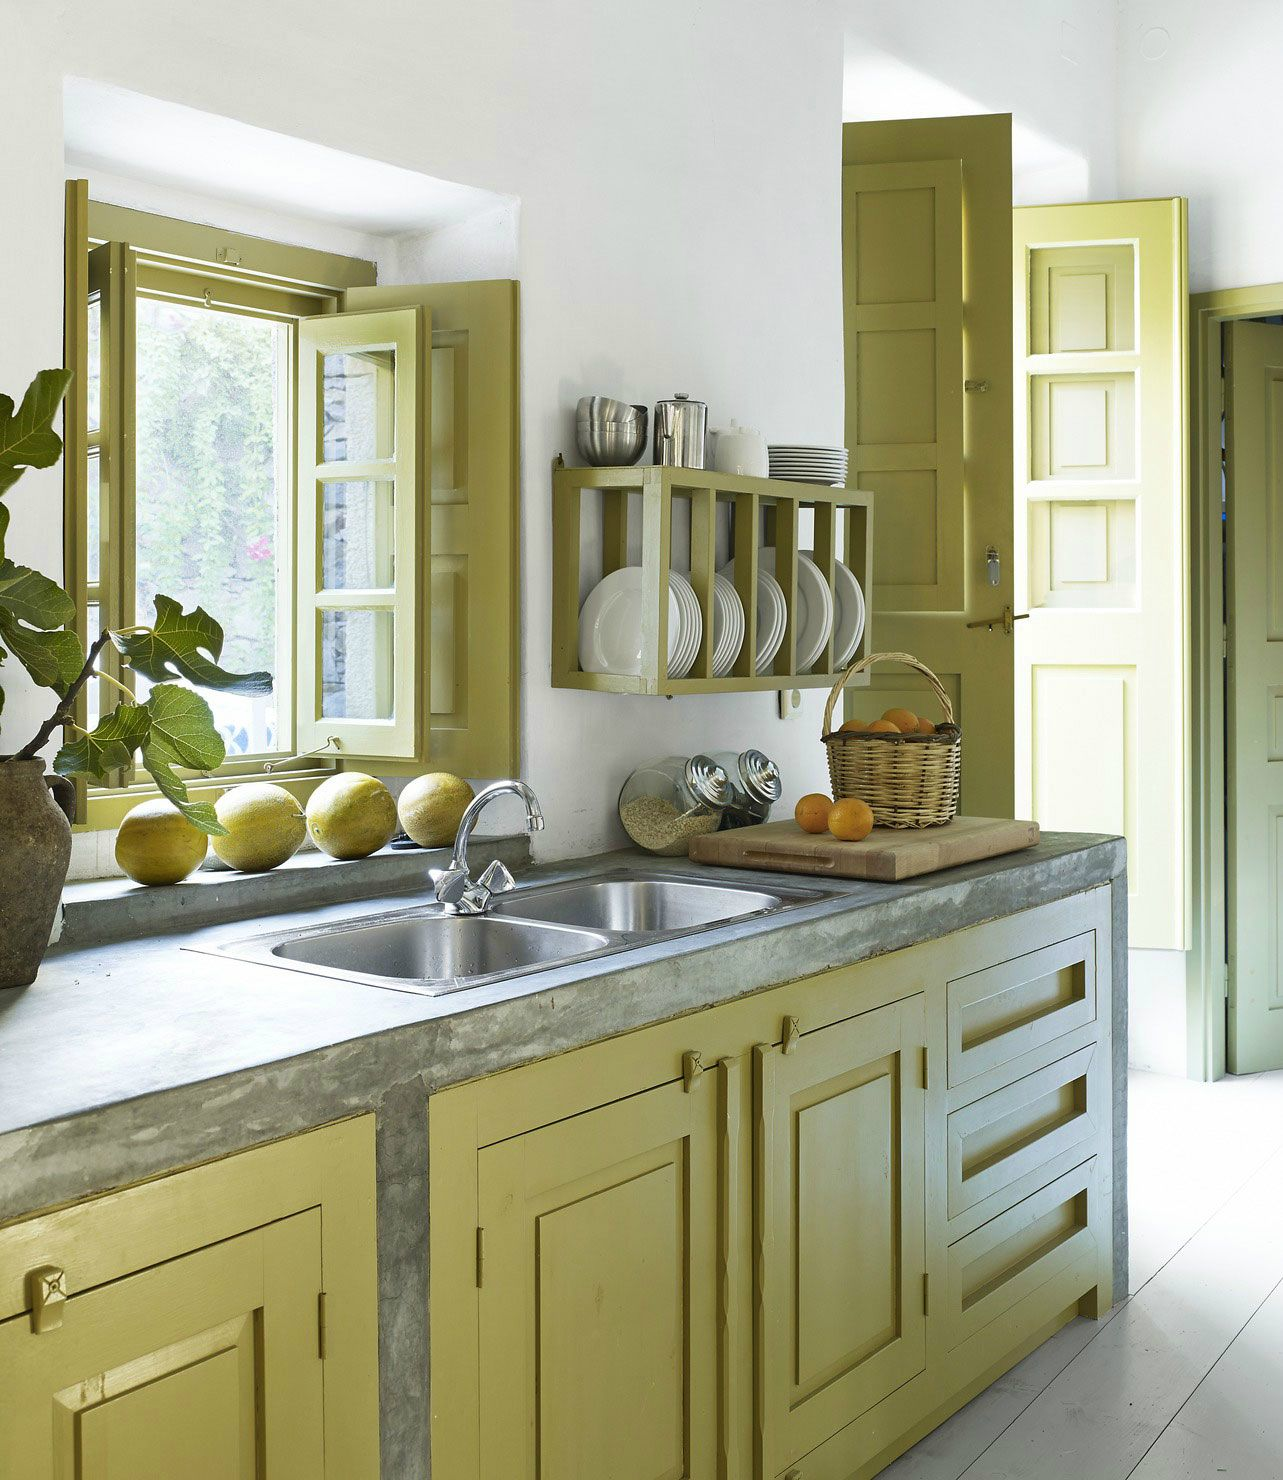 Elle decor predicts the color trends for 2017 yellow for Kitchen design trends